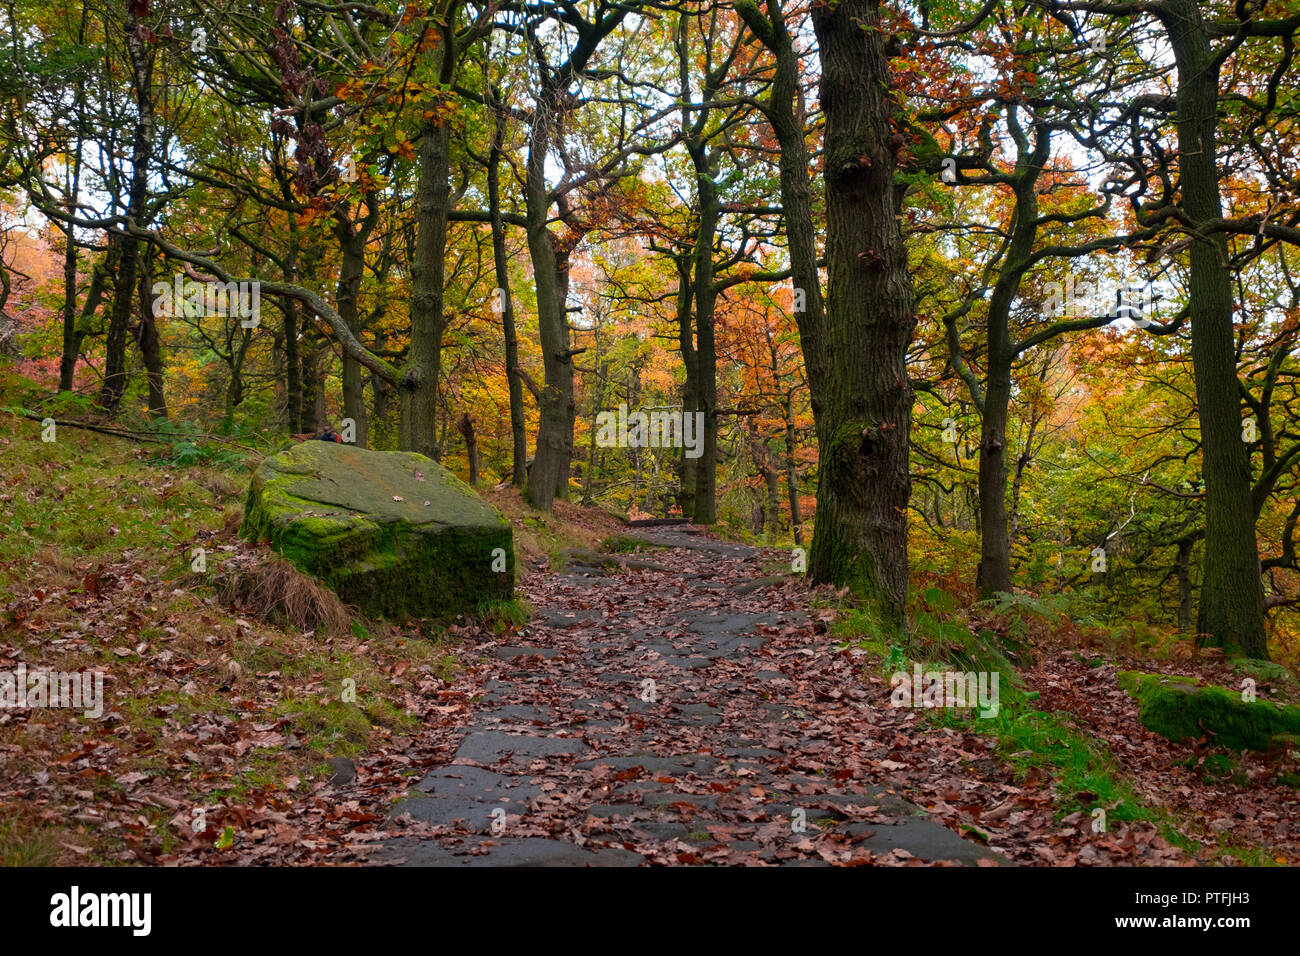 Padley Gorge footpath, an ancient woodland in the care of the national trust - Stock Image